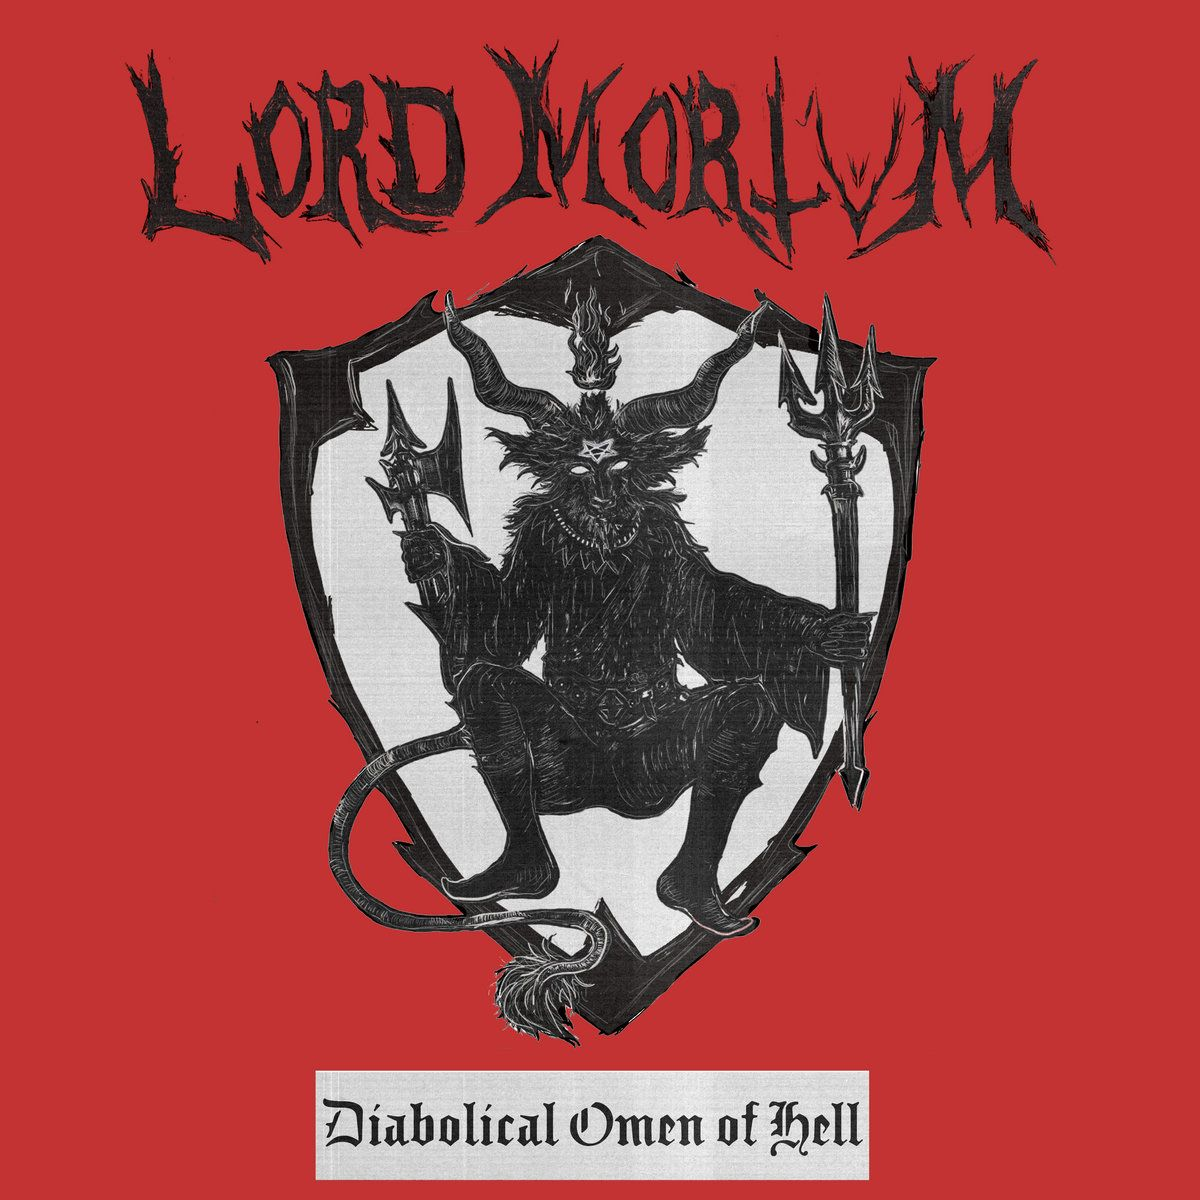 Lord Mortvm - Diabolical Omen of Hell